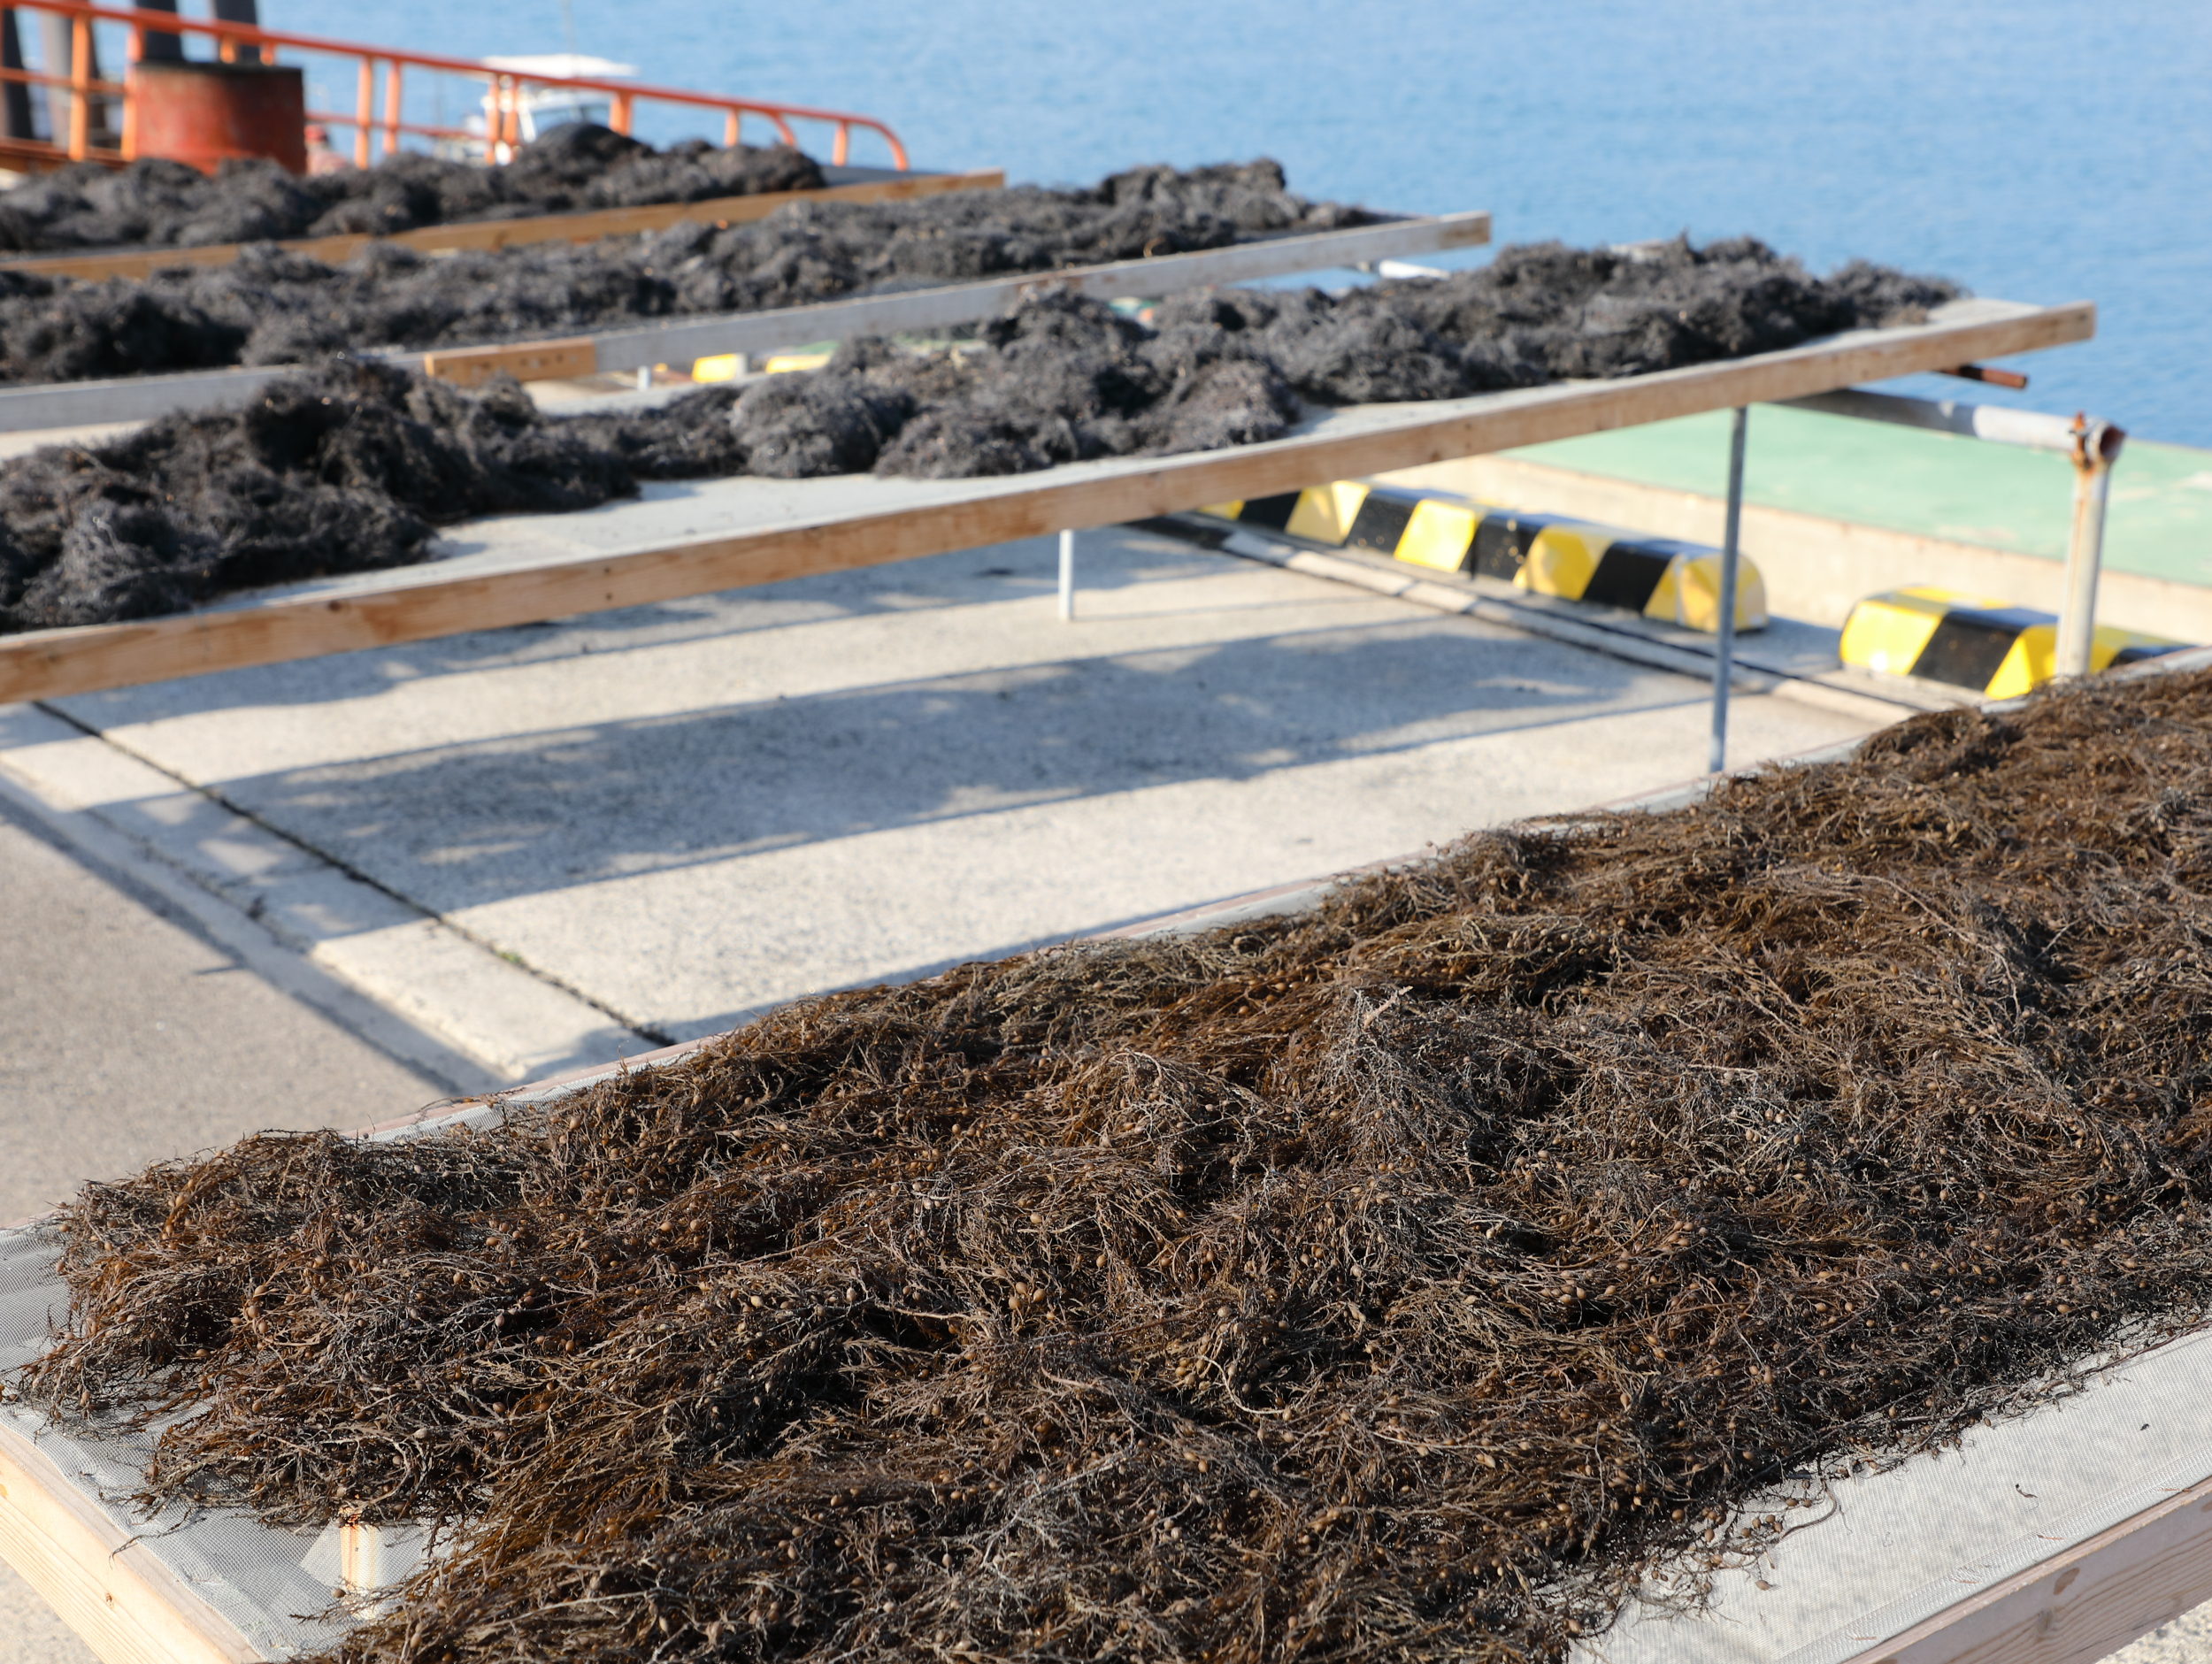 Freshly-harvested  hon'dawara  seaweed laid out on racks to dry naturally in the sun.